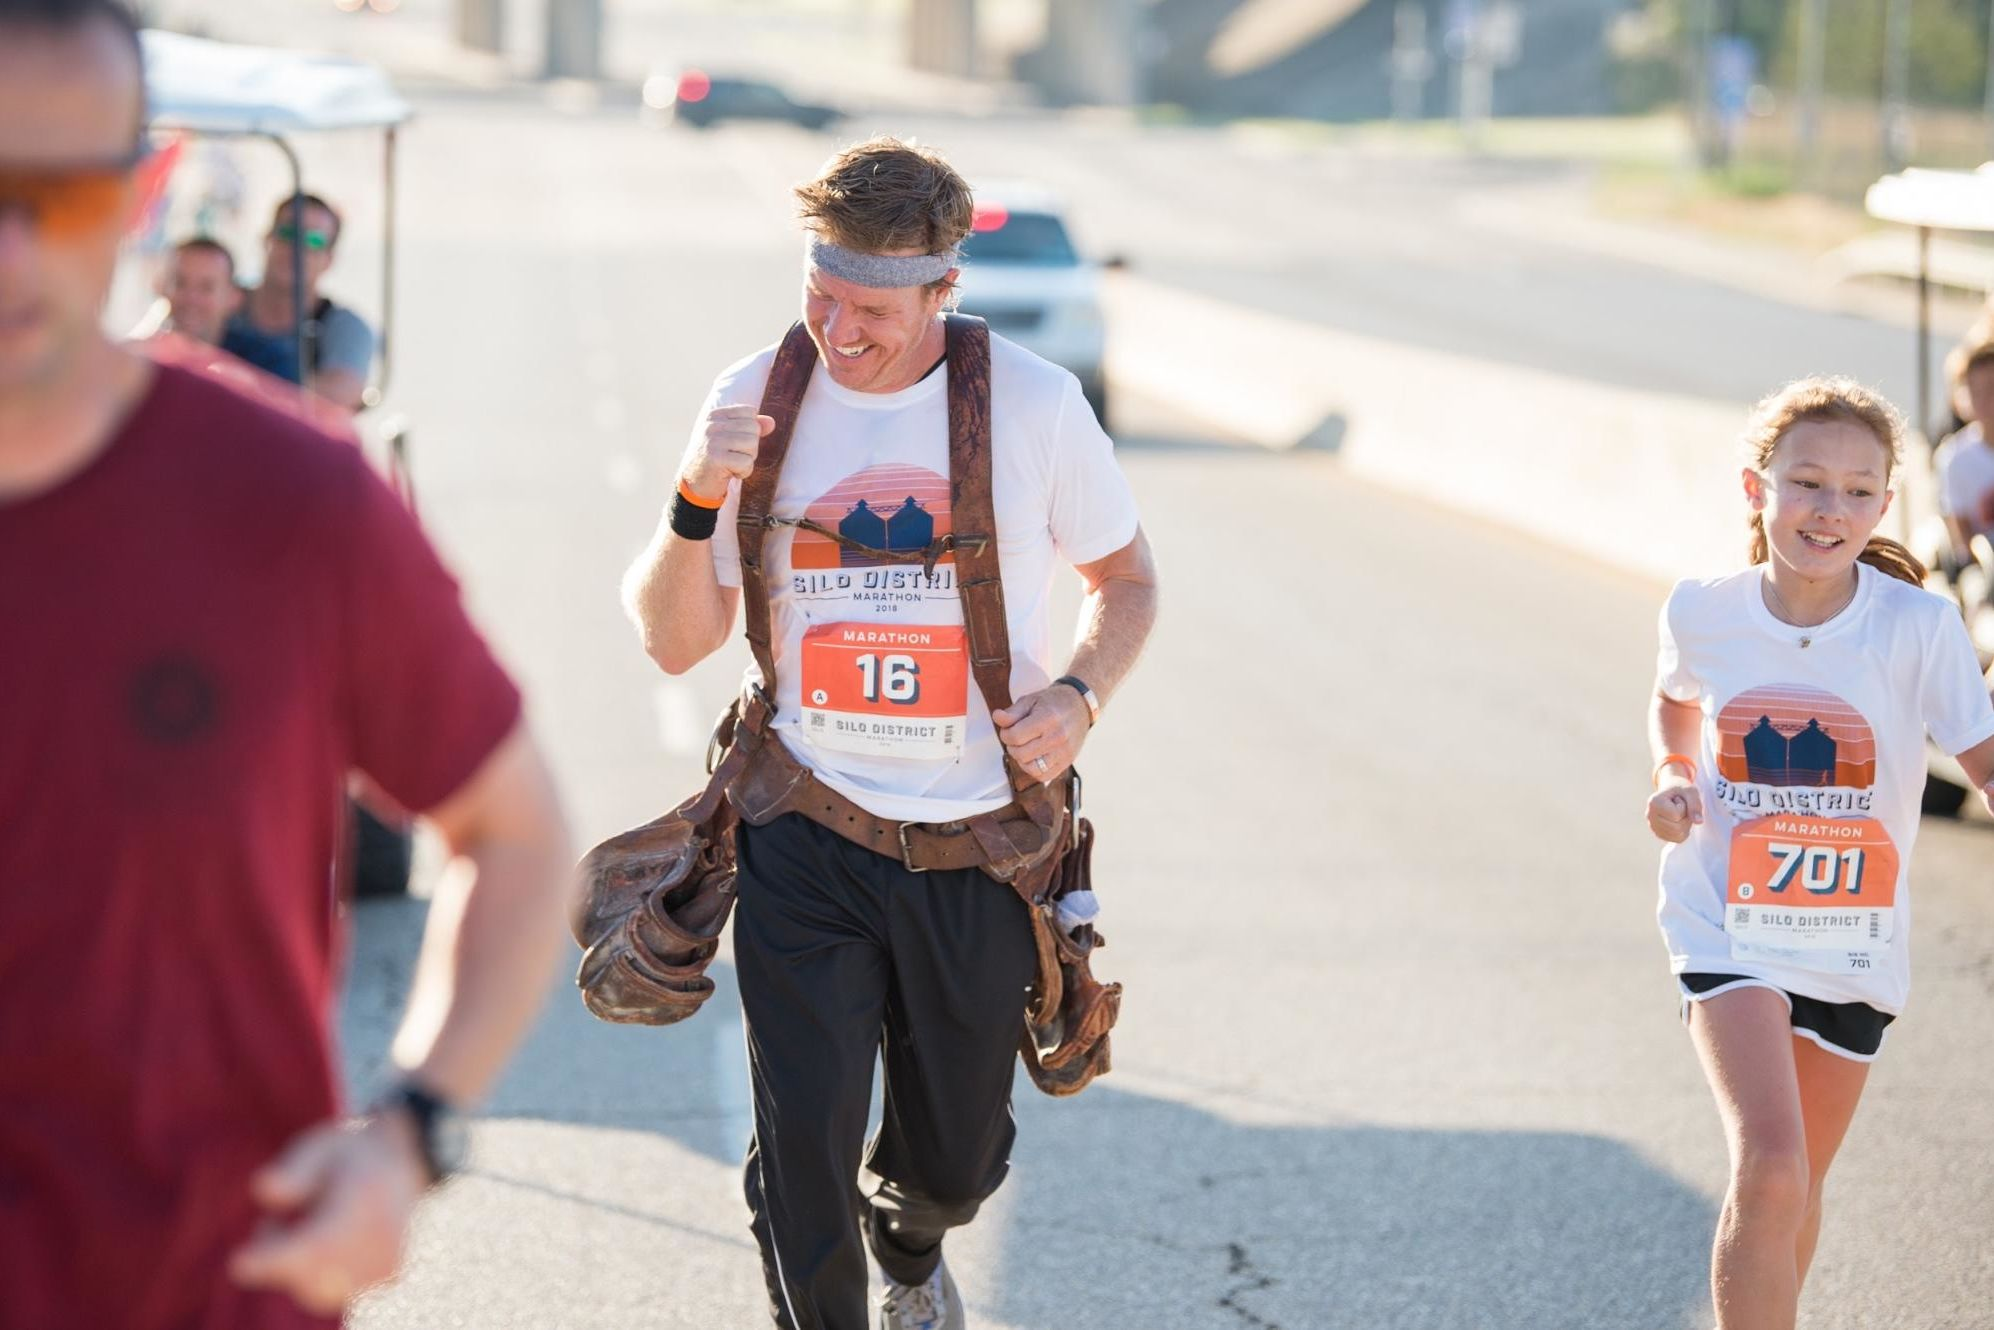 Chip Gaines Reveals the Incredible Reason He Wore His Toolbelt While Running His Marathon